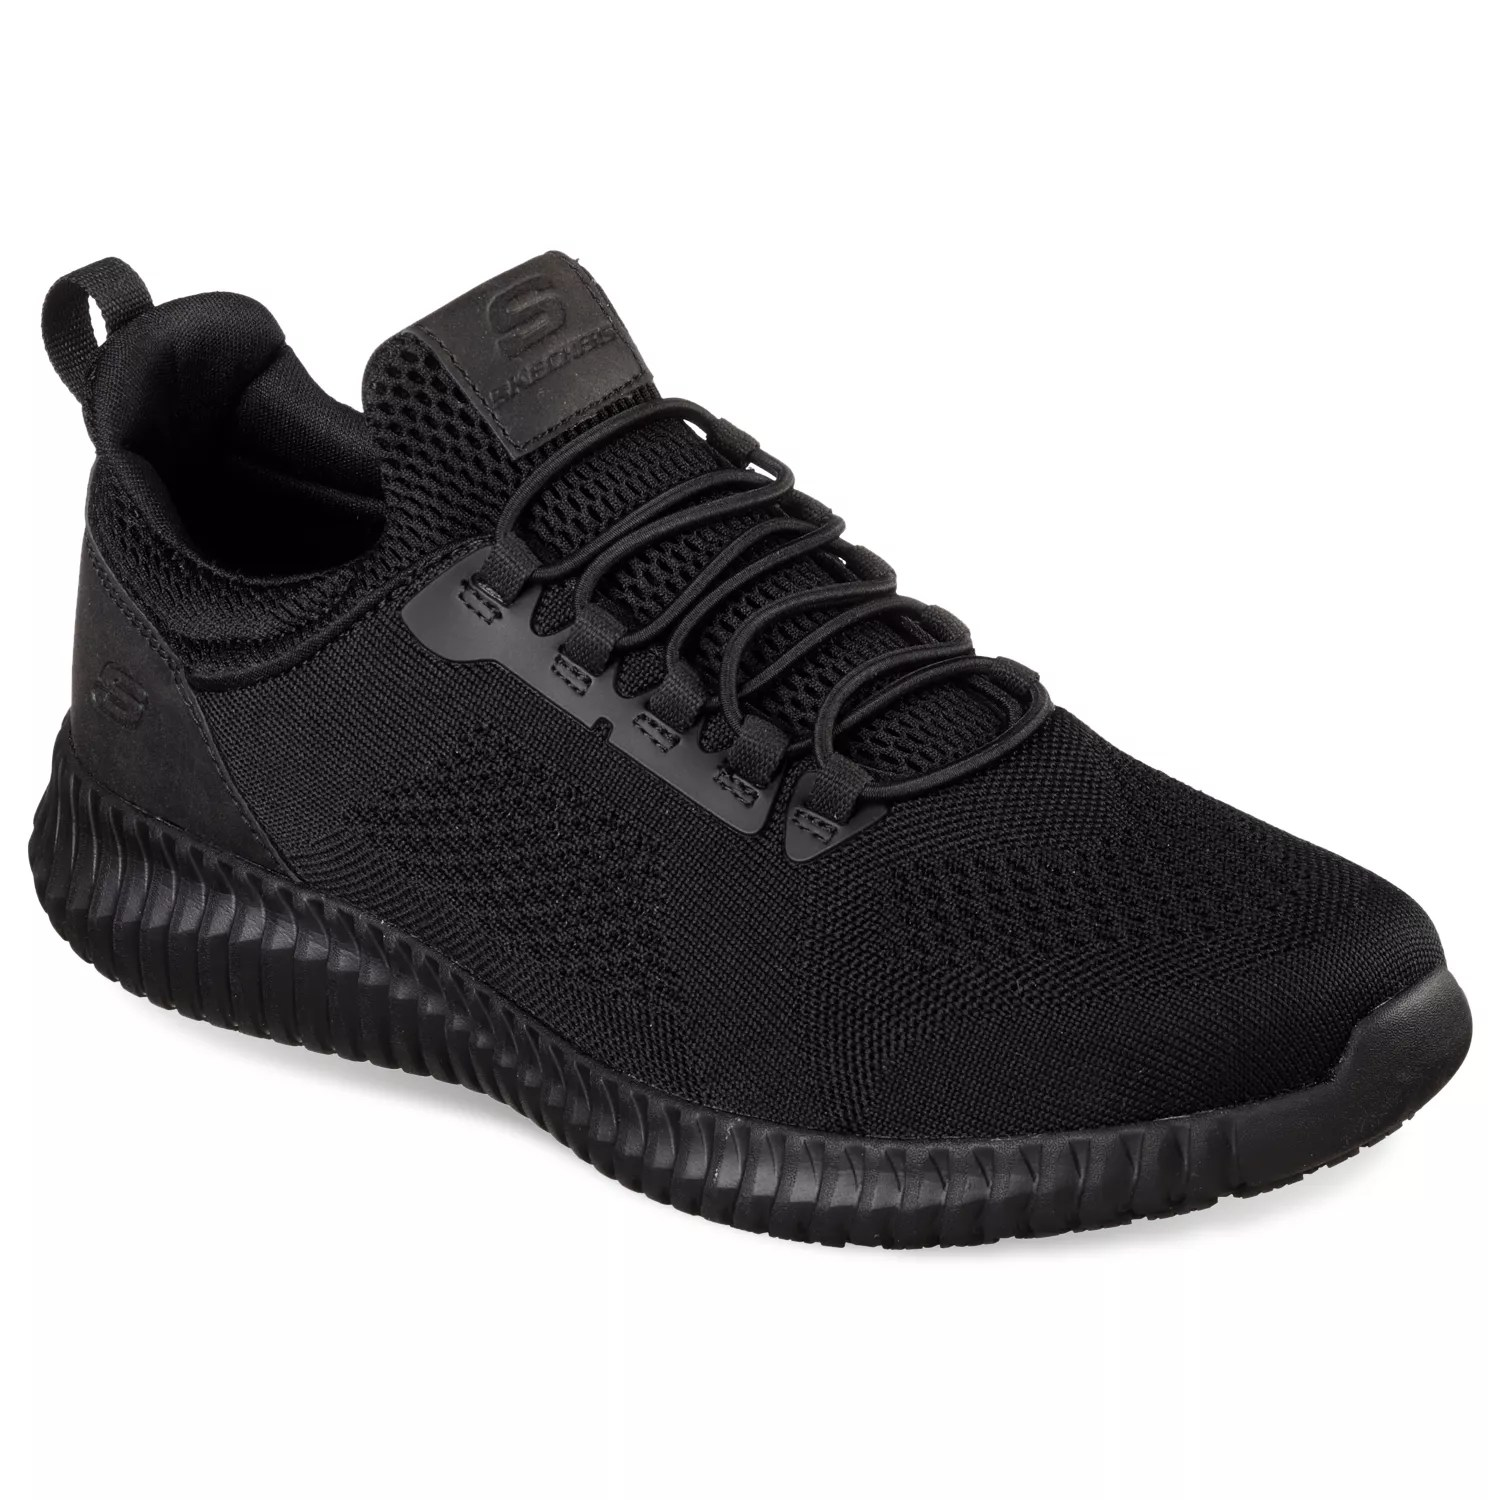 Where Can I Buy Non Skid Shoes